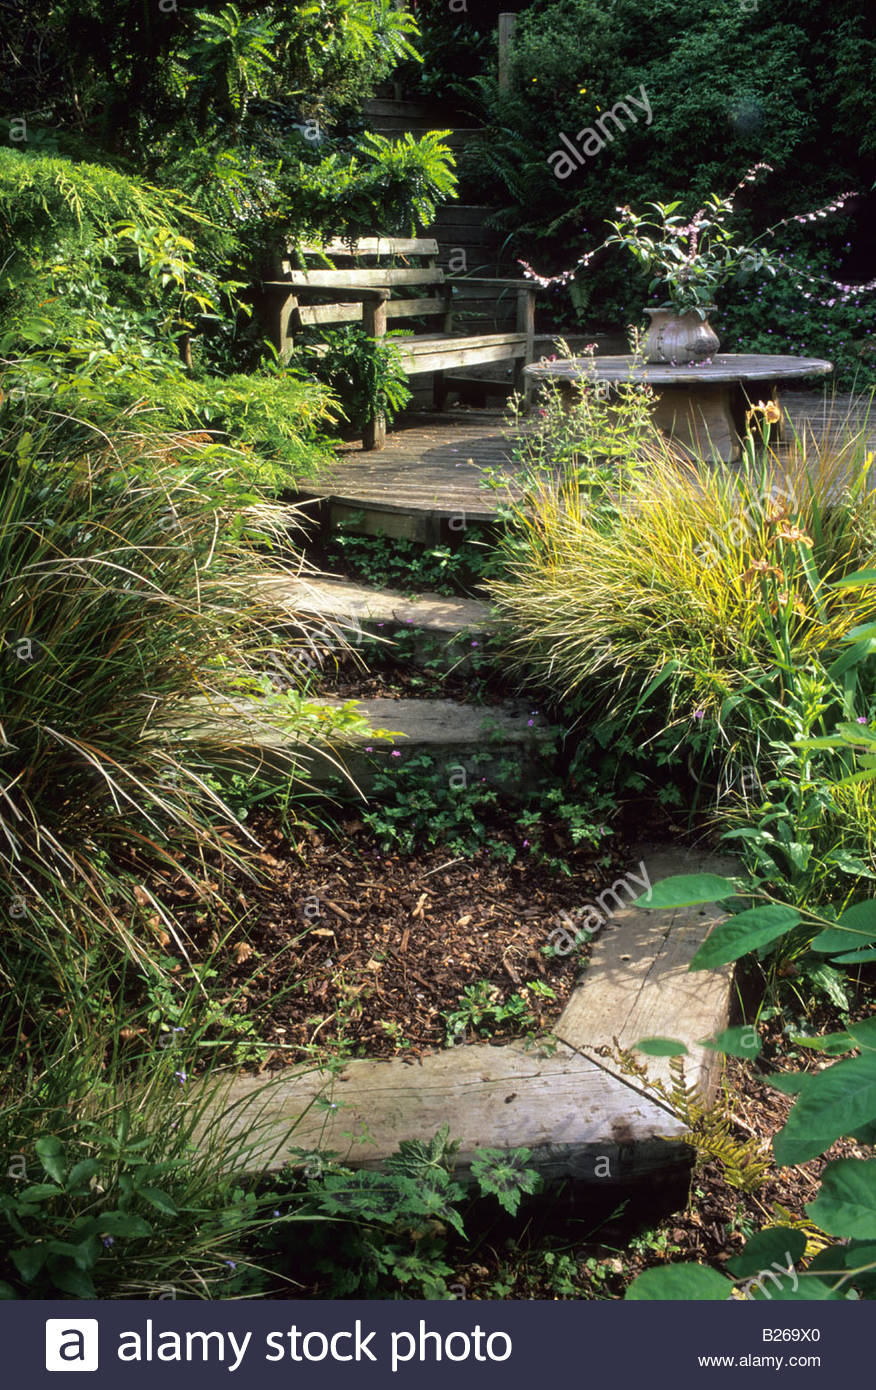 brownshill gloucestershire design pamela woods railway sleepers and mulch filled step in steeply sloping garden stock